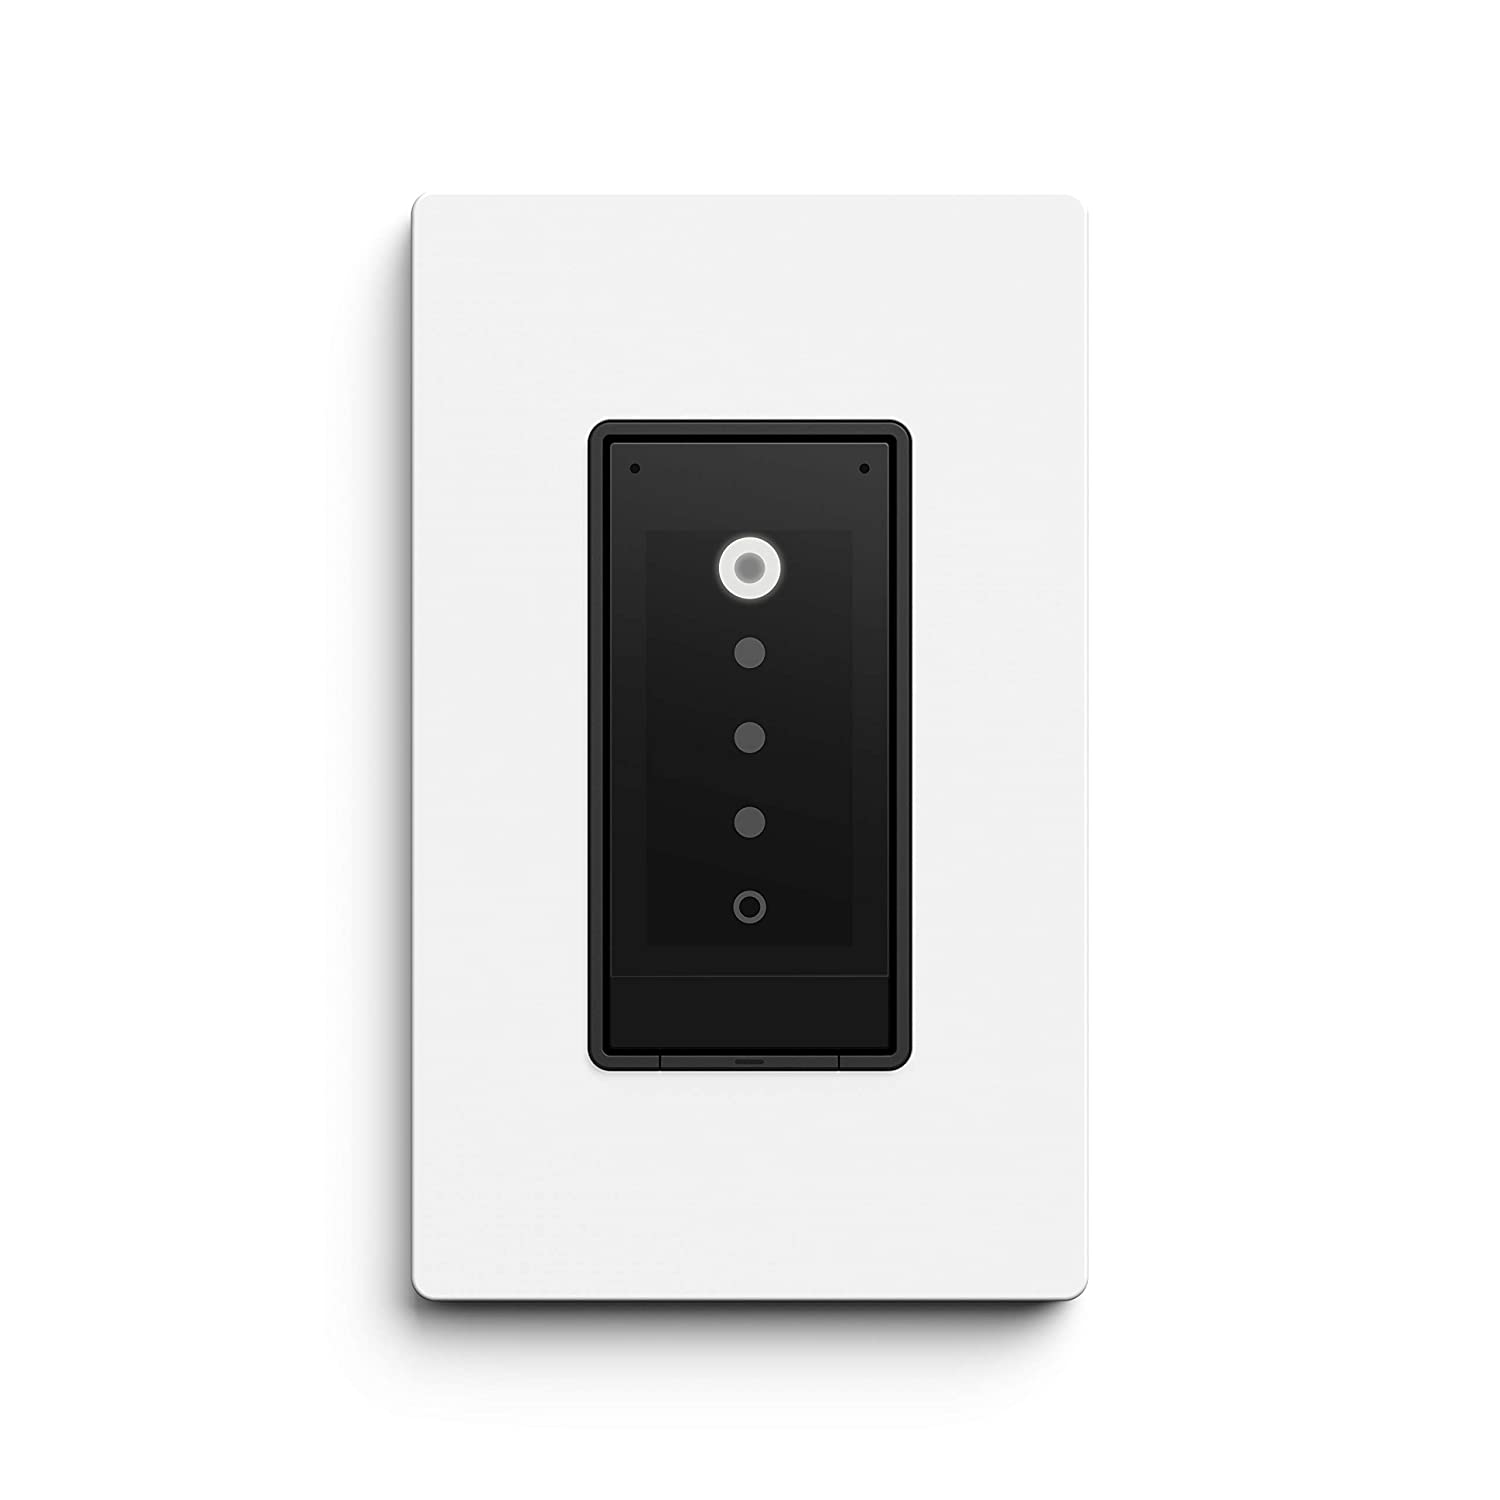 ORRO - Smart Dimmer System with Motion Sensor, WiFi, Supports Multiway, In-Wall Lighting Control Compatible with Alexa & Google, SmartThings, August Lock, Philips Hue